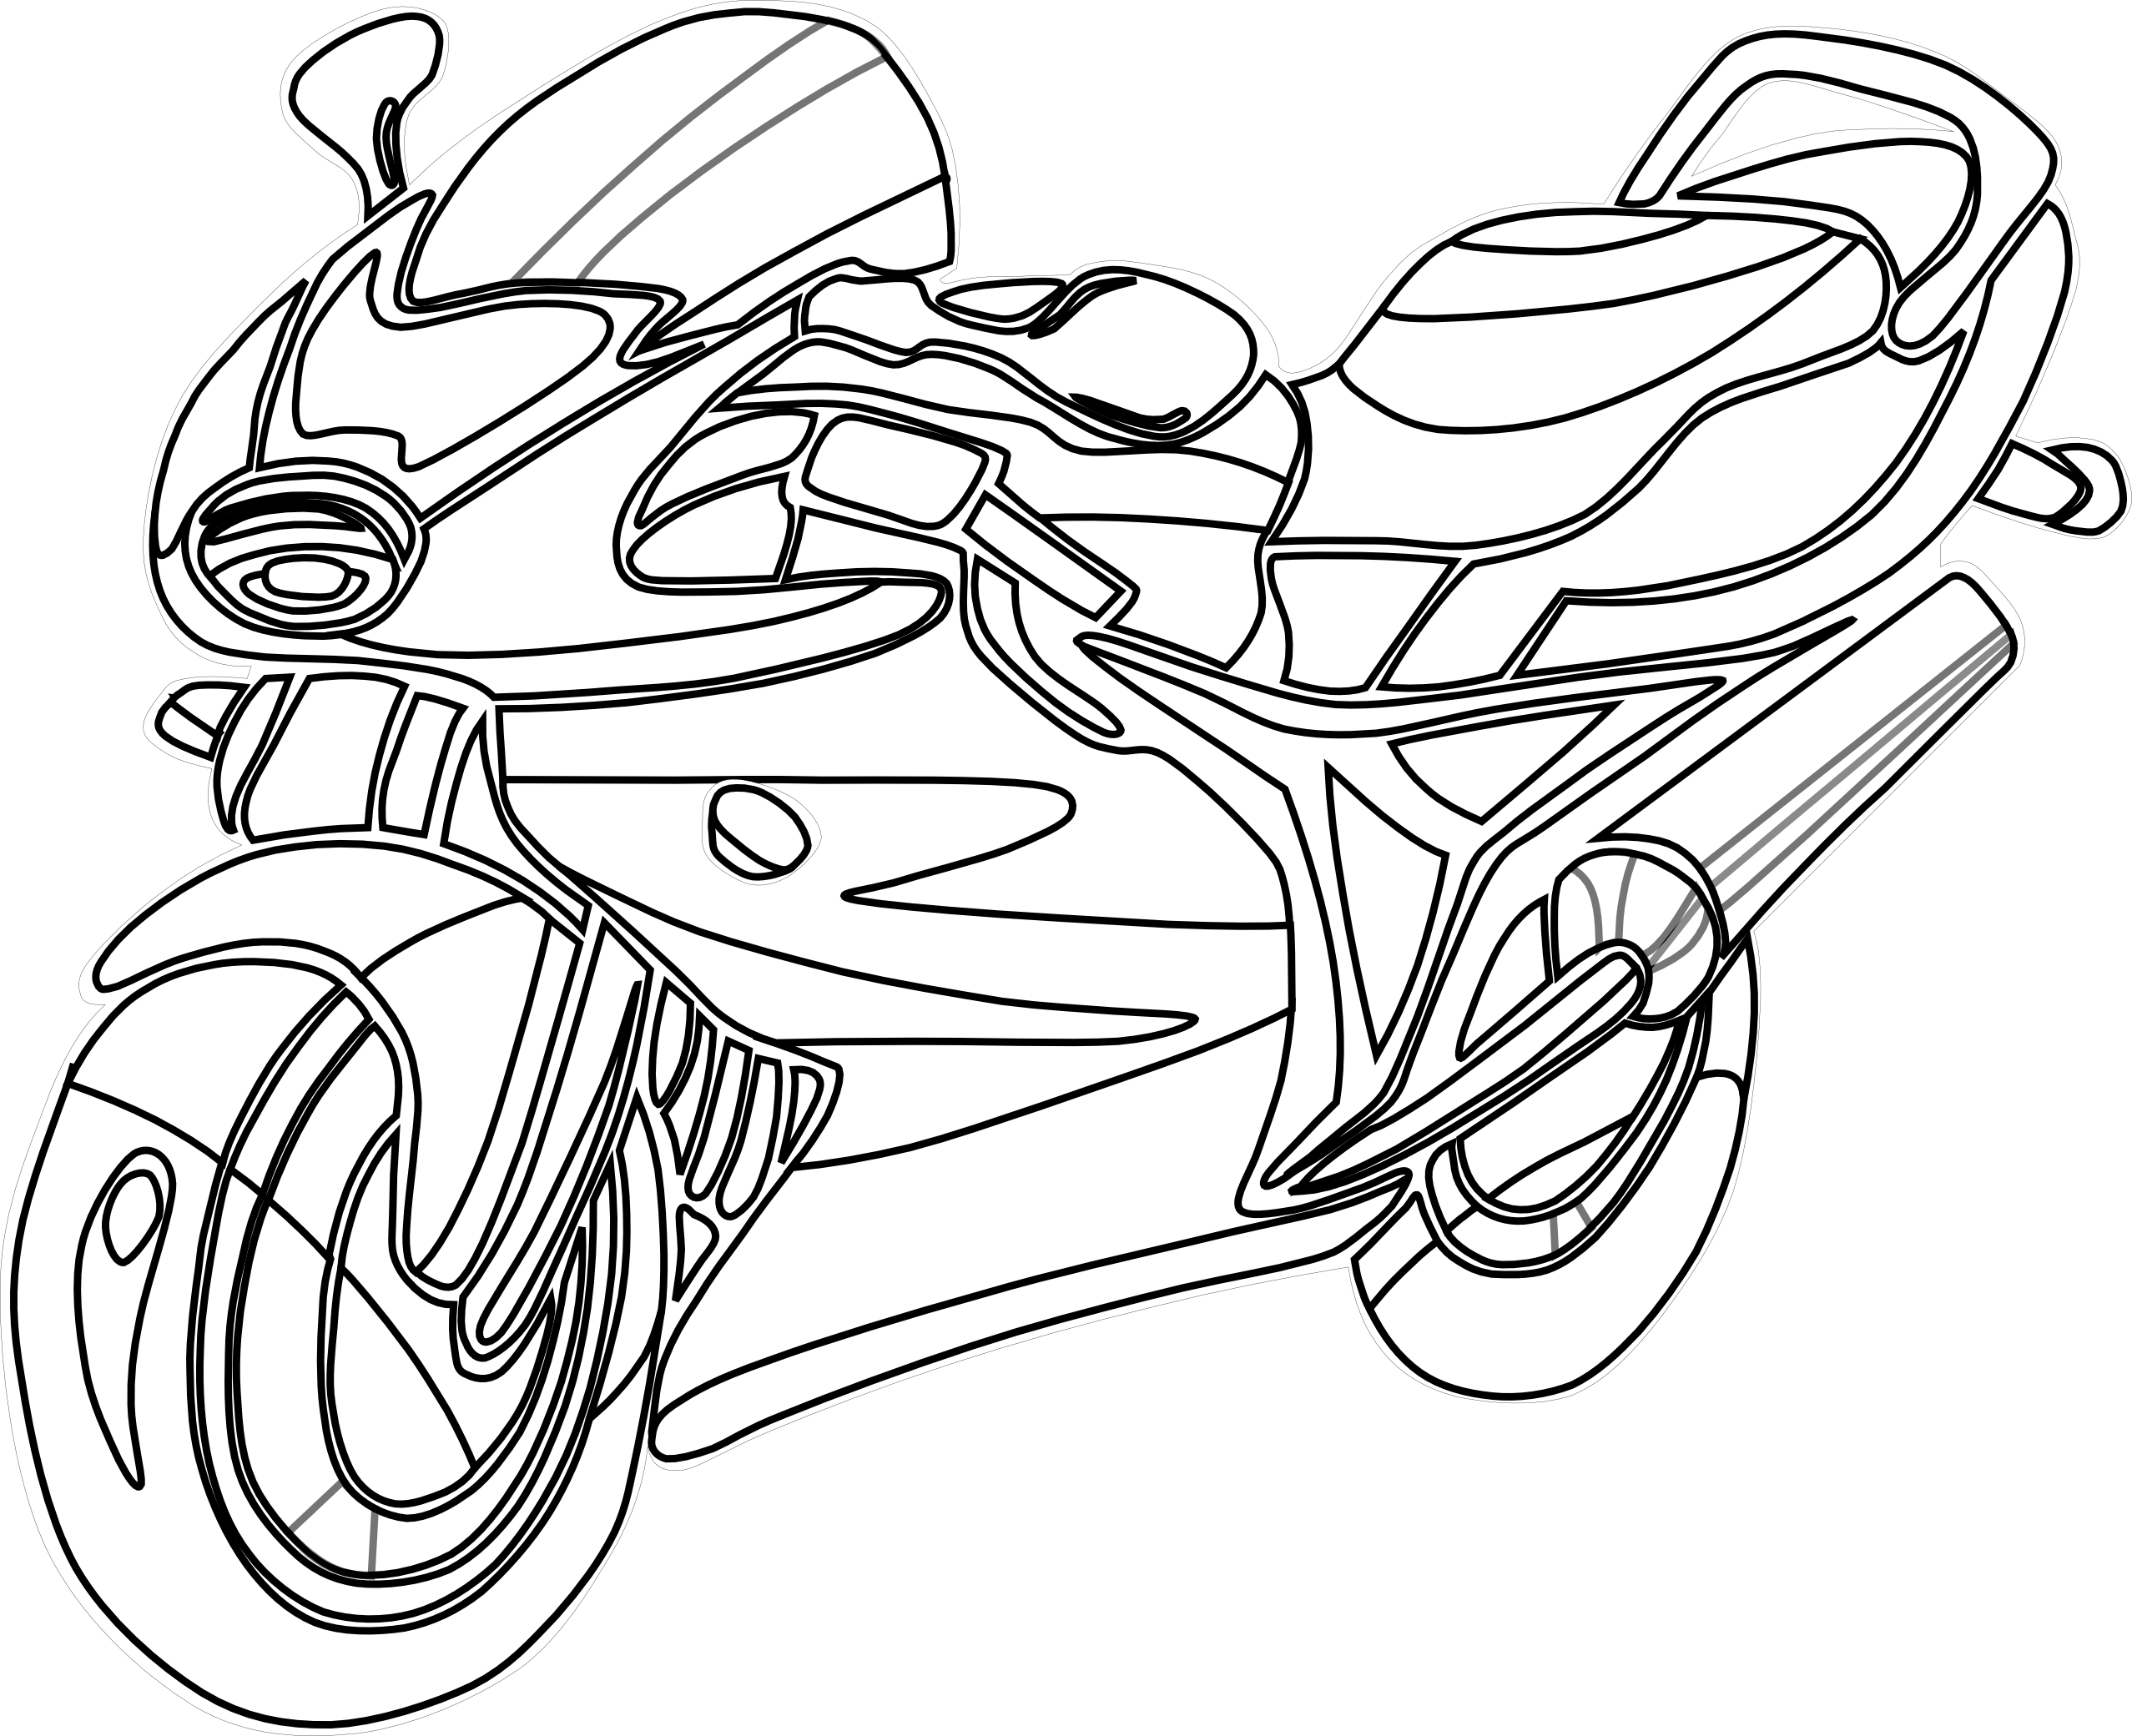 Harley davidson clipart printable. Silhouette clip art at